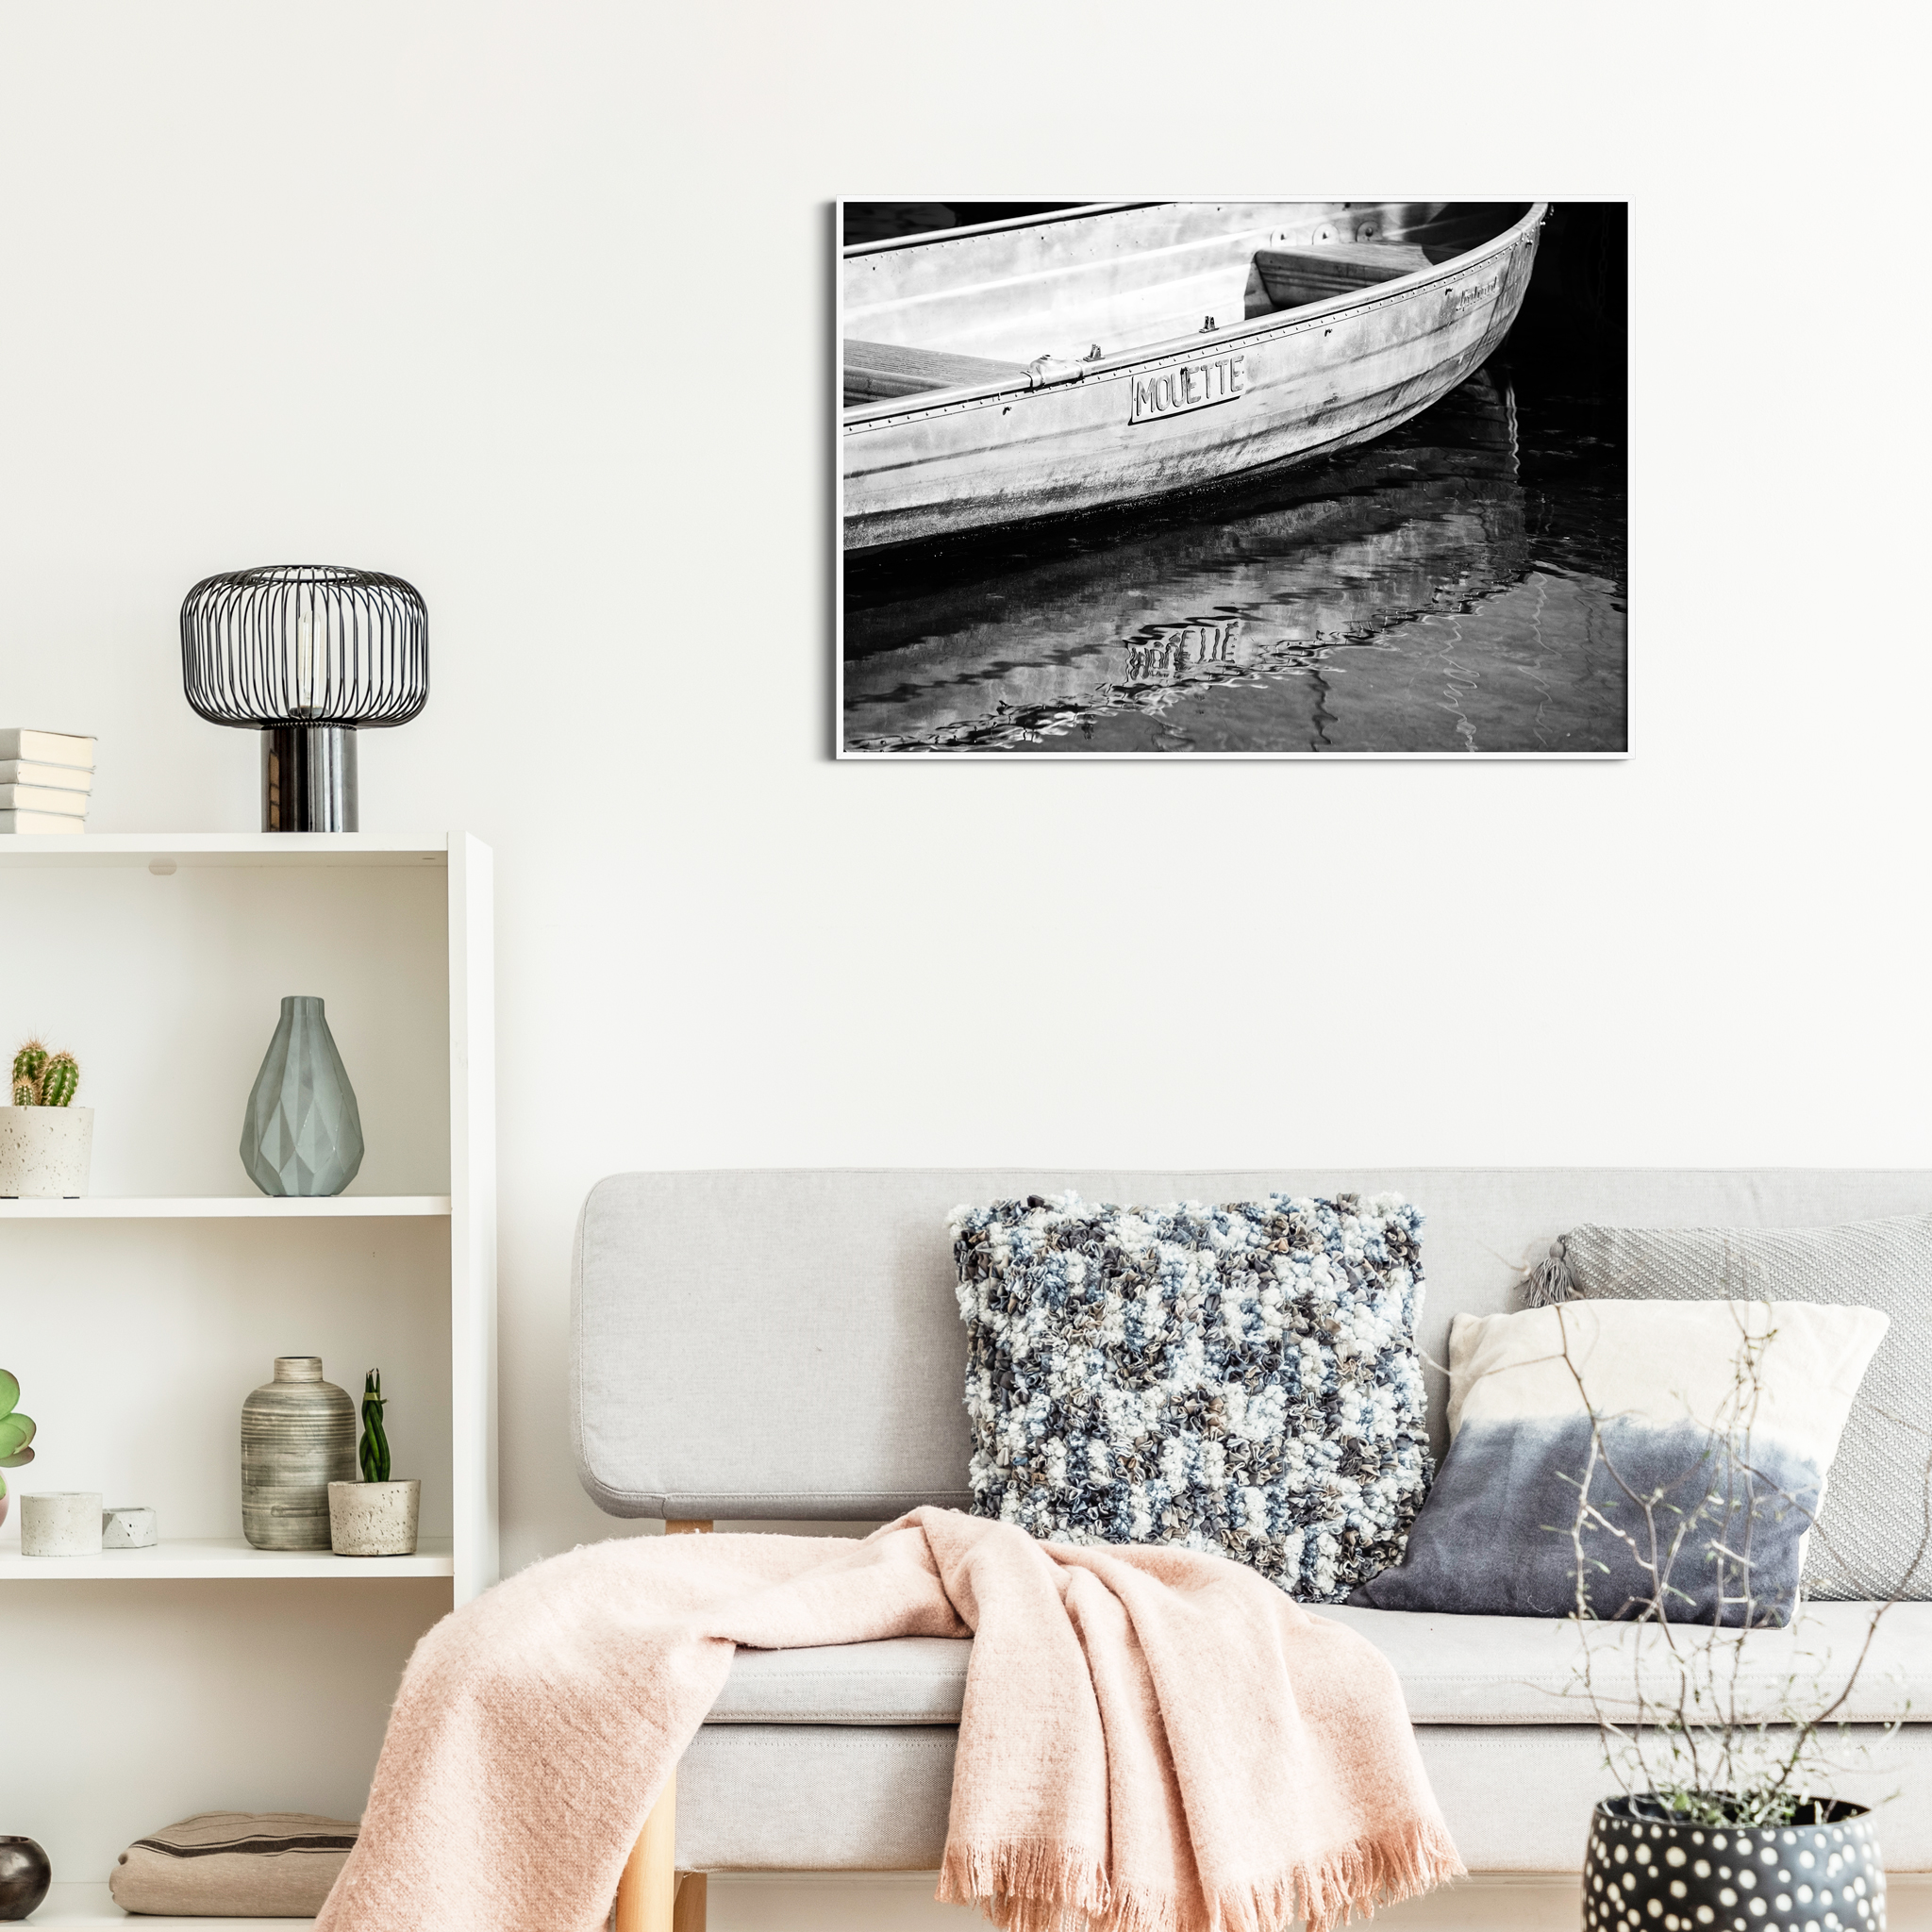 Boat in Geneva - black and white print without border in a white frame on the wall